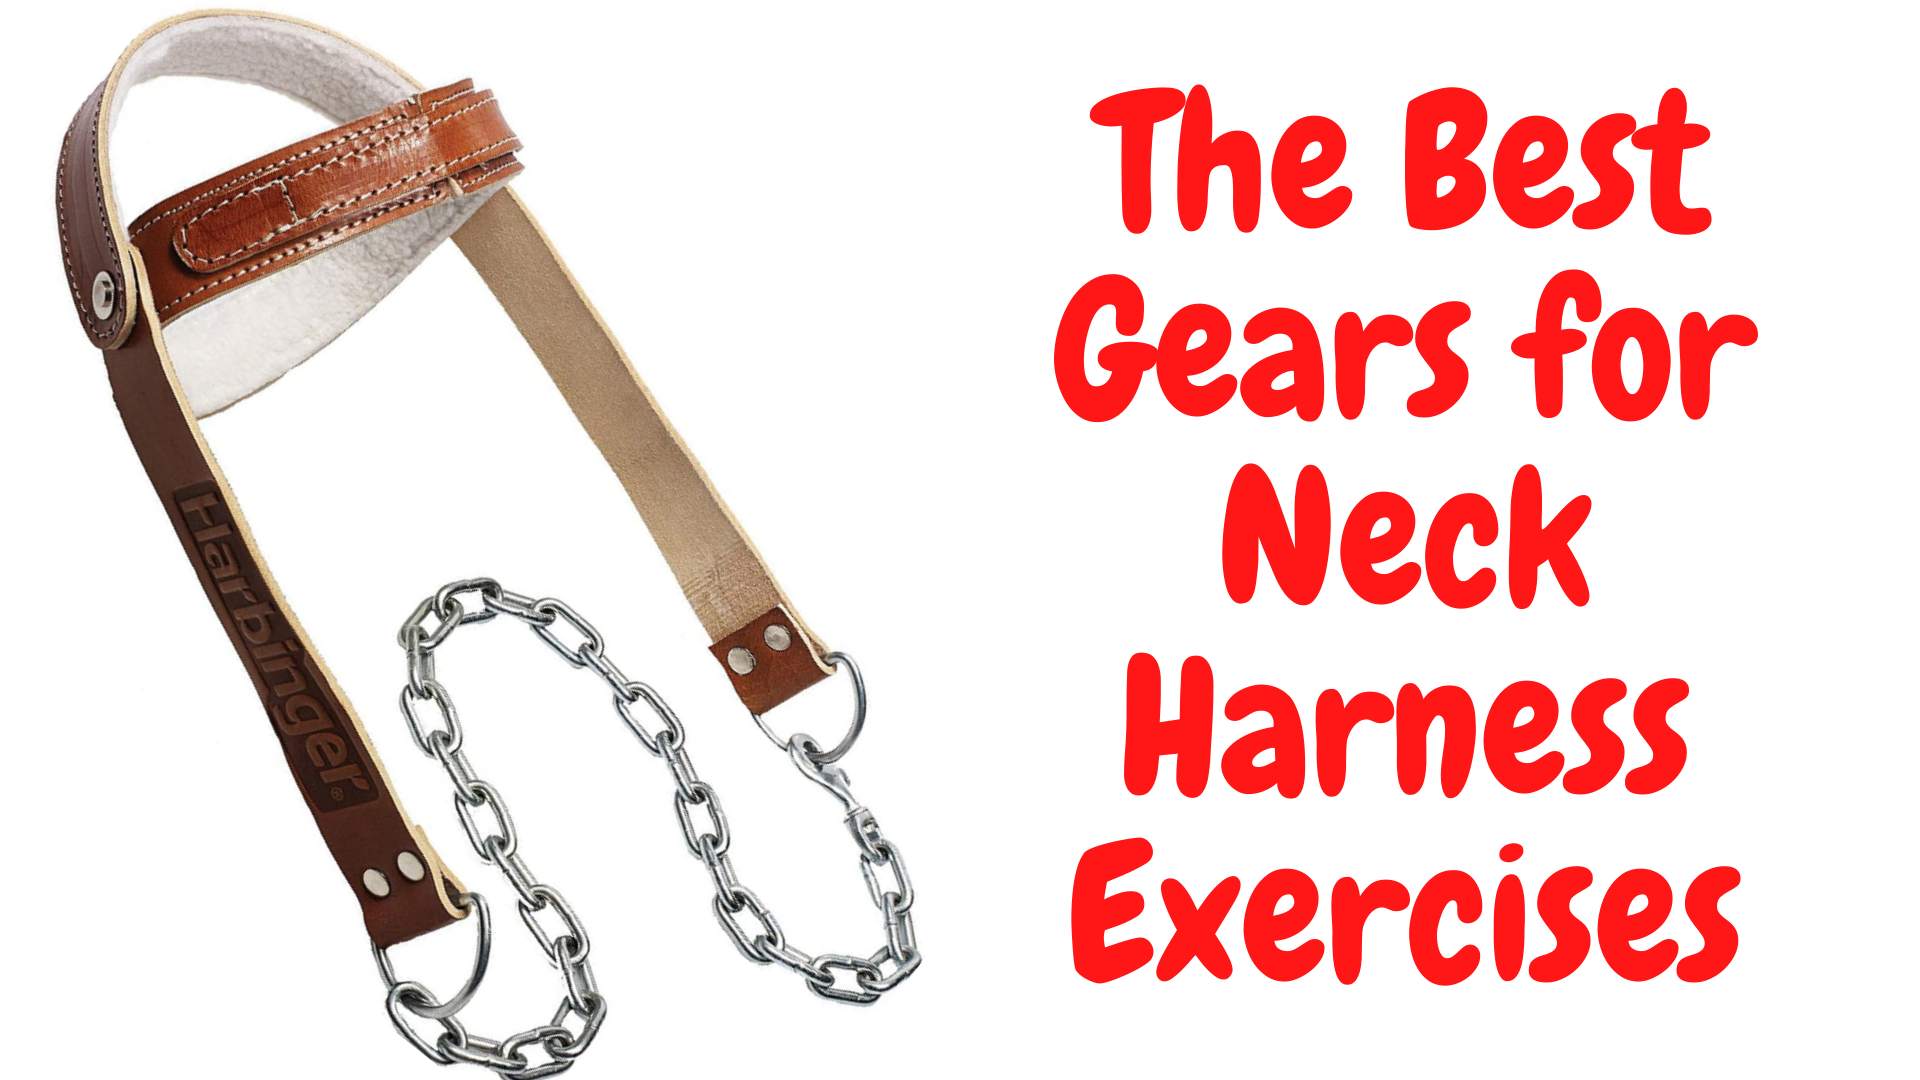 neck harness exercises